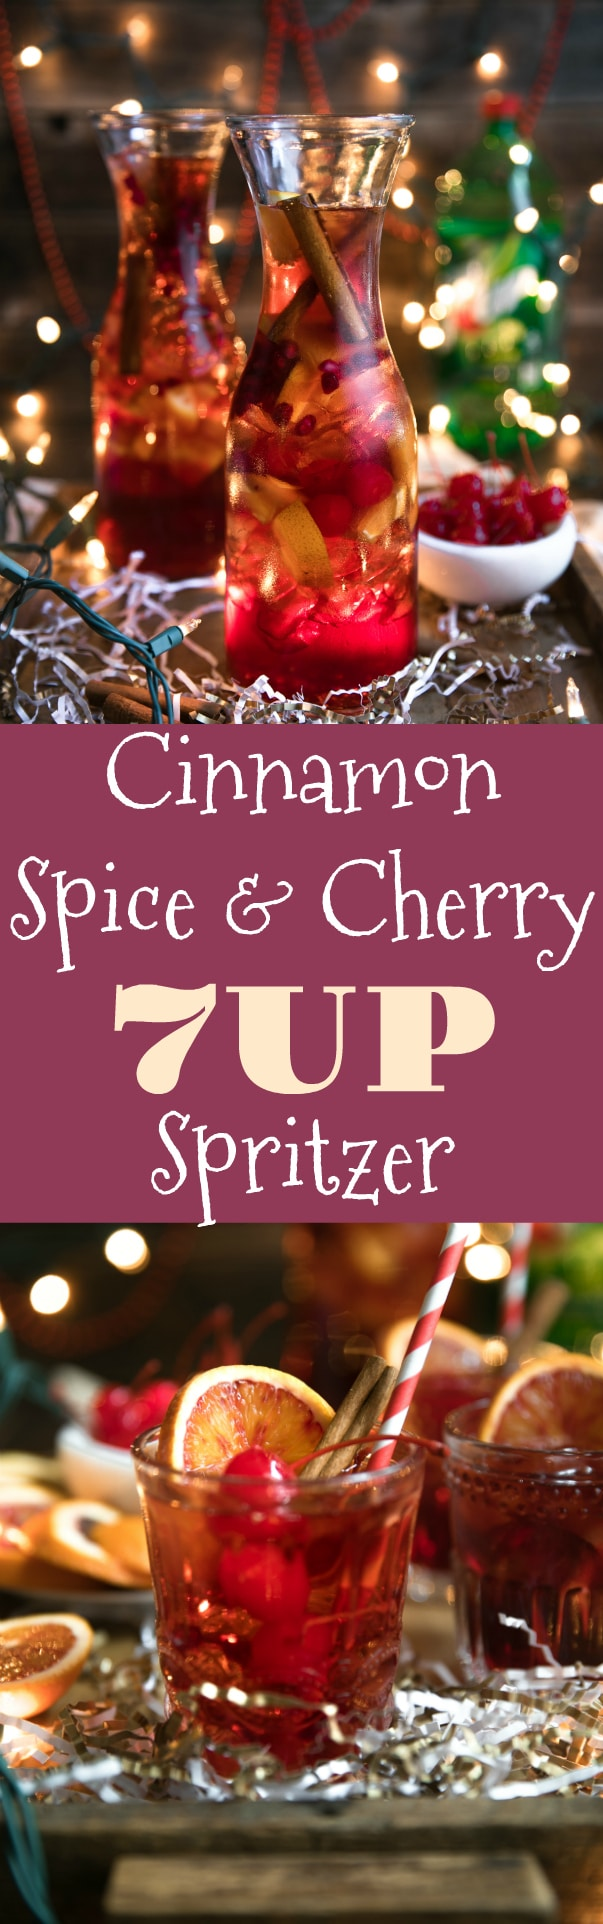 Cinnamon Spice Cherry 7UP Spritzer via @theforkedspoon #ad #cherryspritzer #bourbon #cocktail #holiday #cocktailrecipe #7up #drinks #easyrecipe